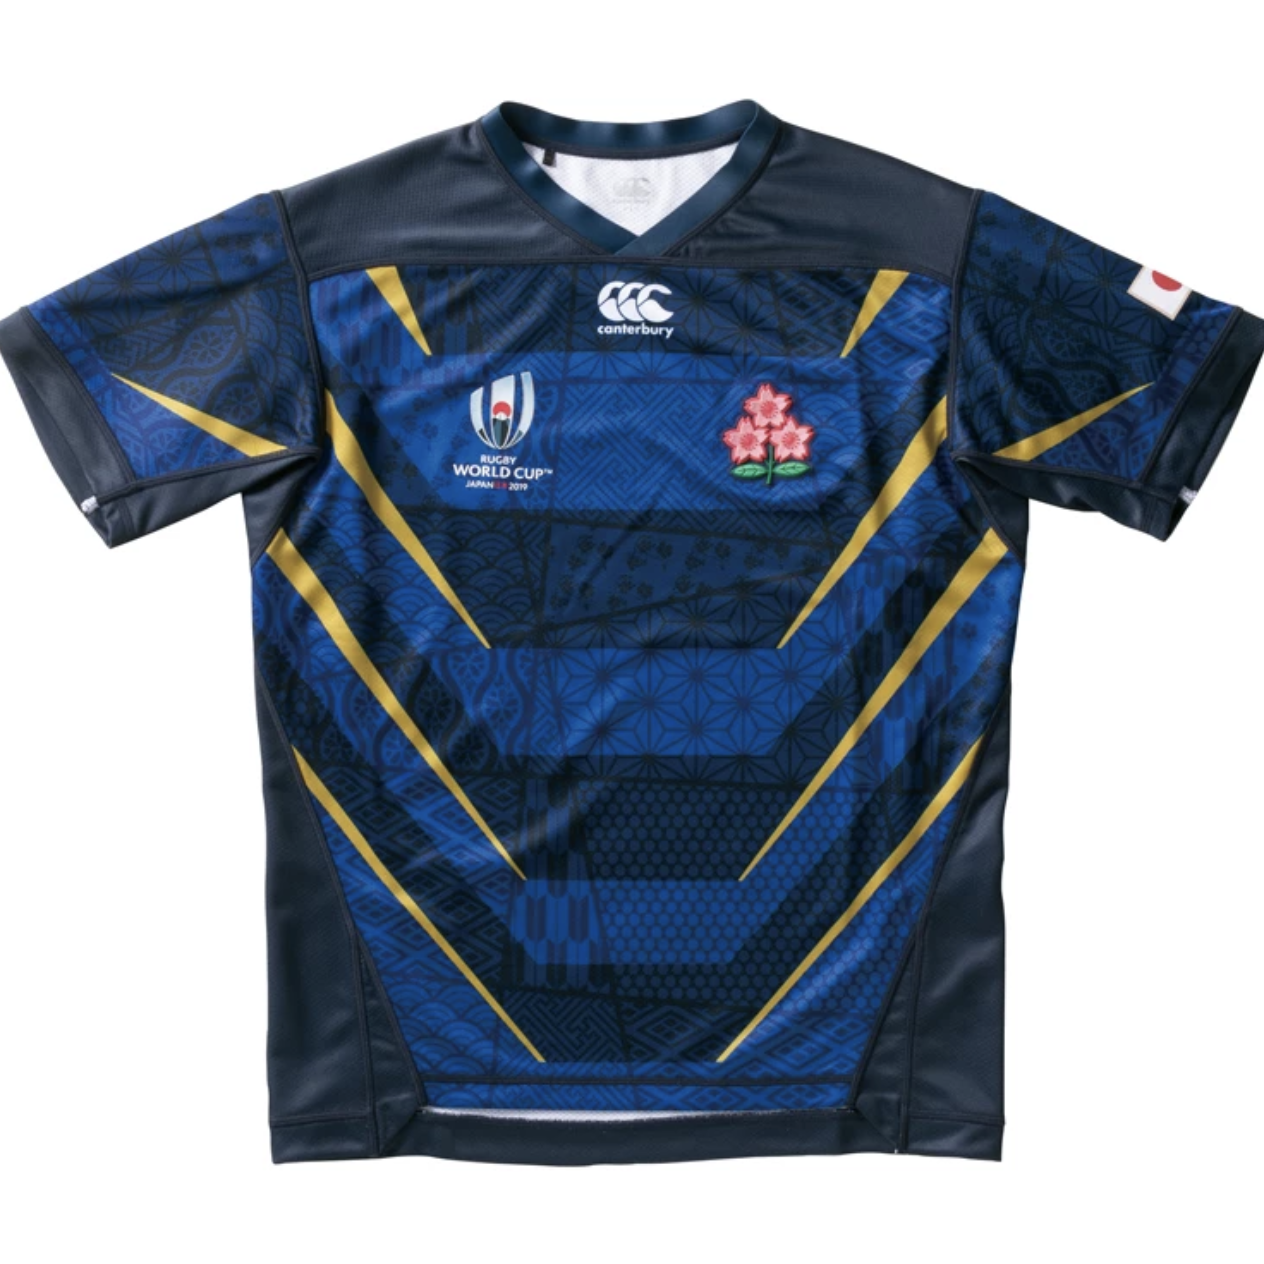 Japan Rugby World Cup 2019 Away Kit Cheap Soccer Jersey Rugby World Cup Jersey Rugby Outfit